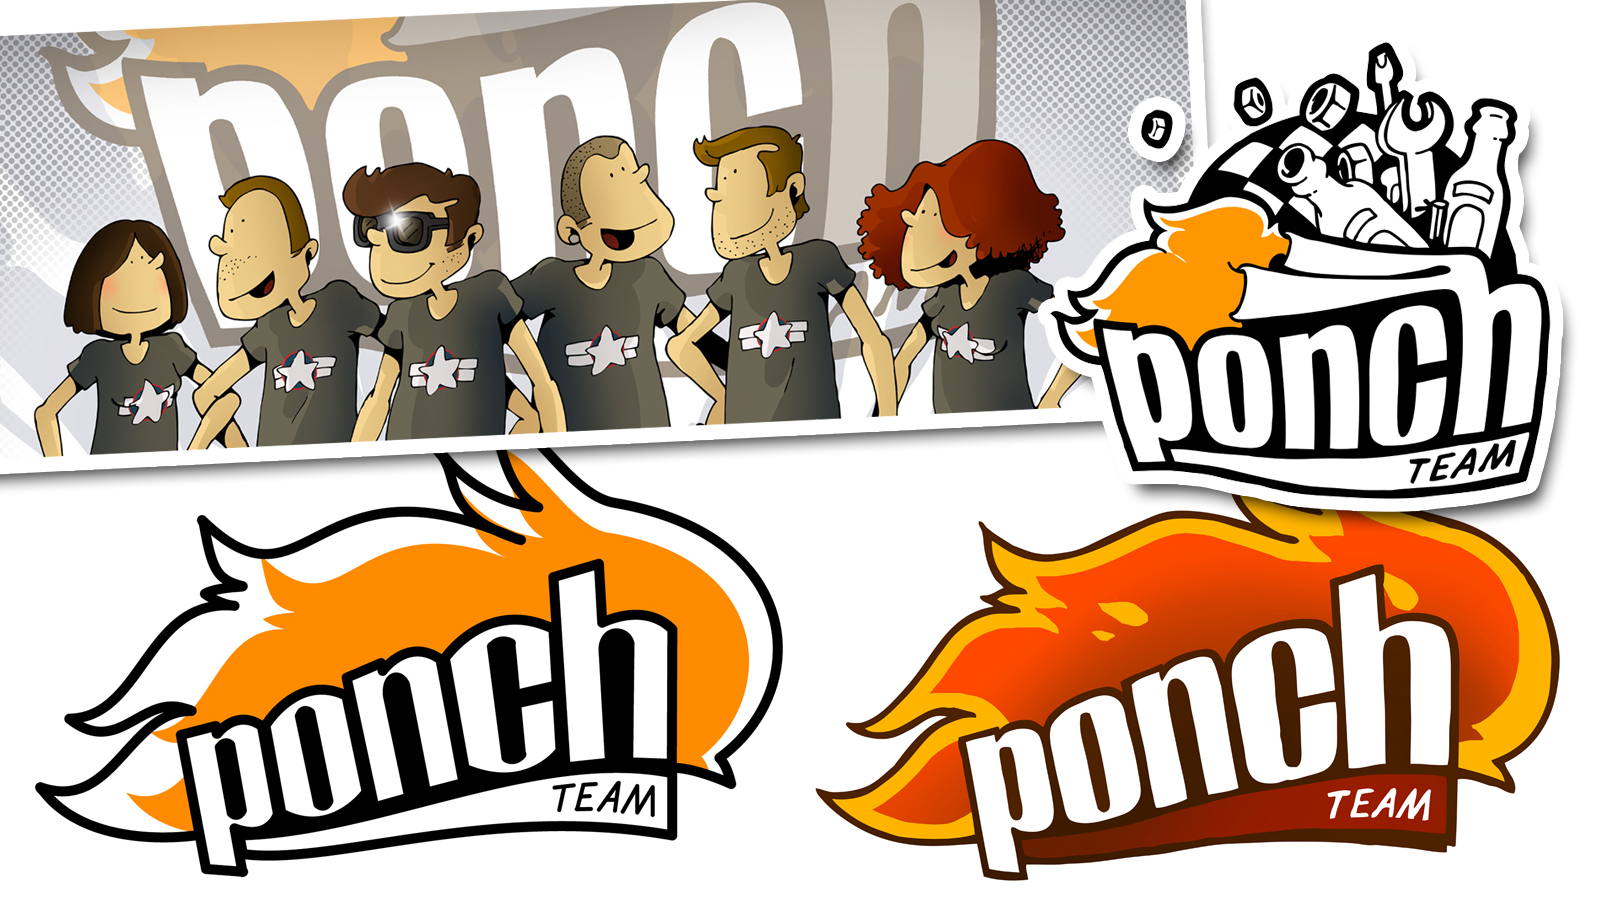 Ponch Team